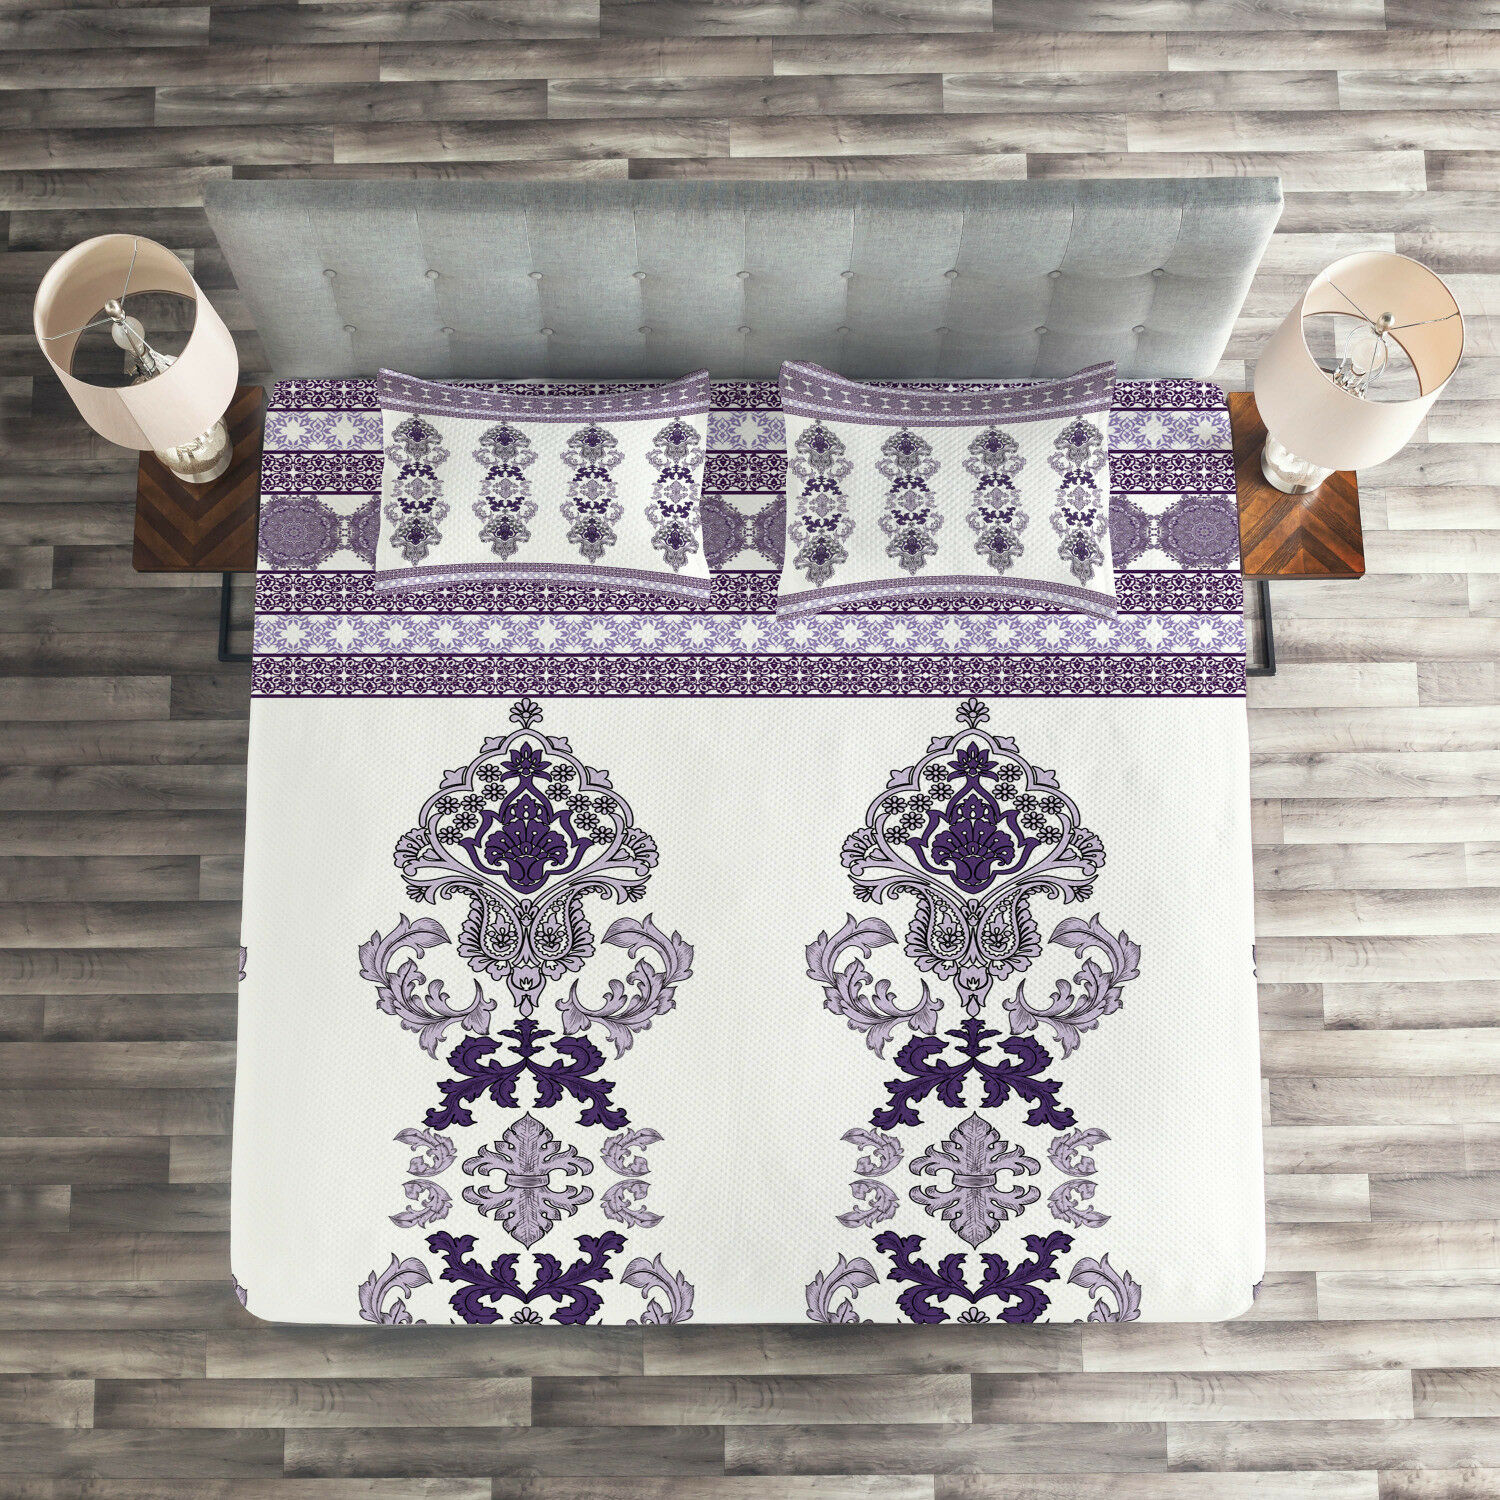 Damask Quilted Coverlet & Pillow Shams Set, Middle Eastern Motifs Print